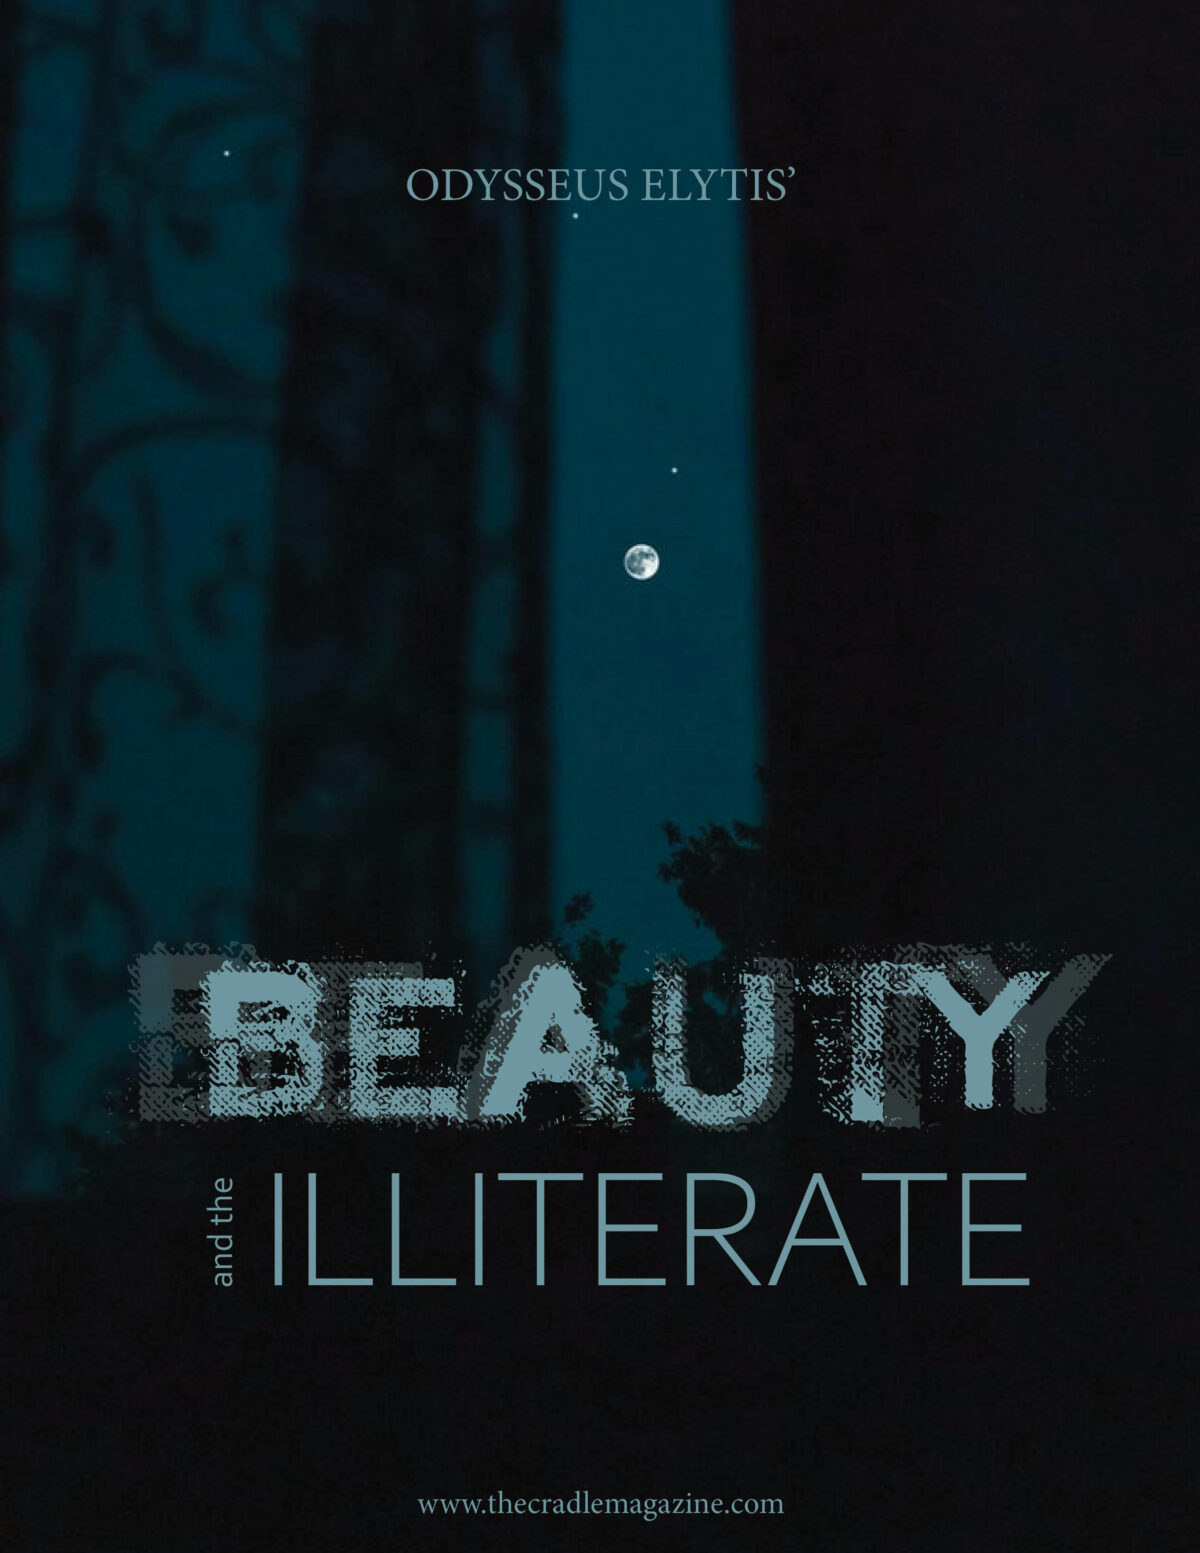 Beauty and the Illiterate